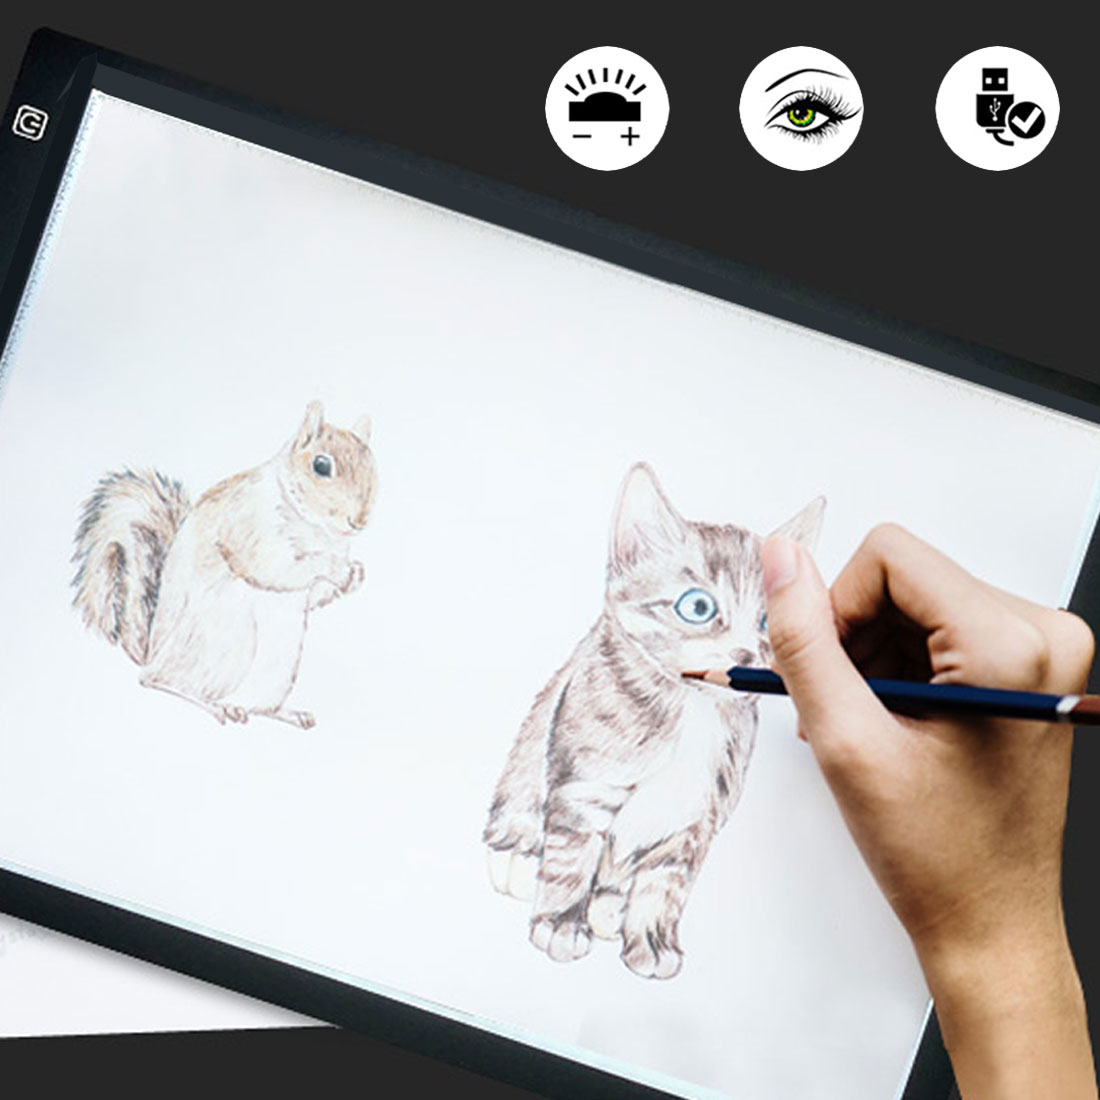 A3 A4 A5 Graphics Tablet LED Digital Pad USB Light Box Copy Digital Tablets Painting Writing Drawing Tablet Sketching Animation